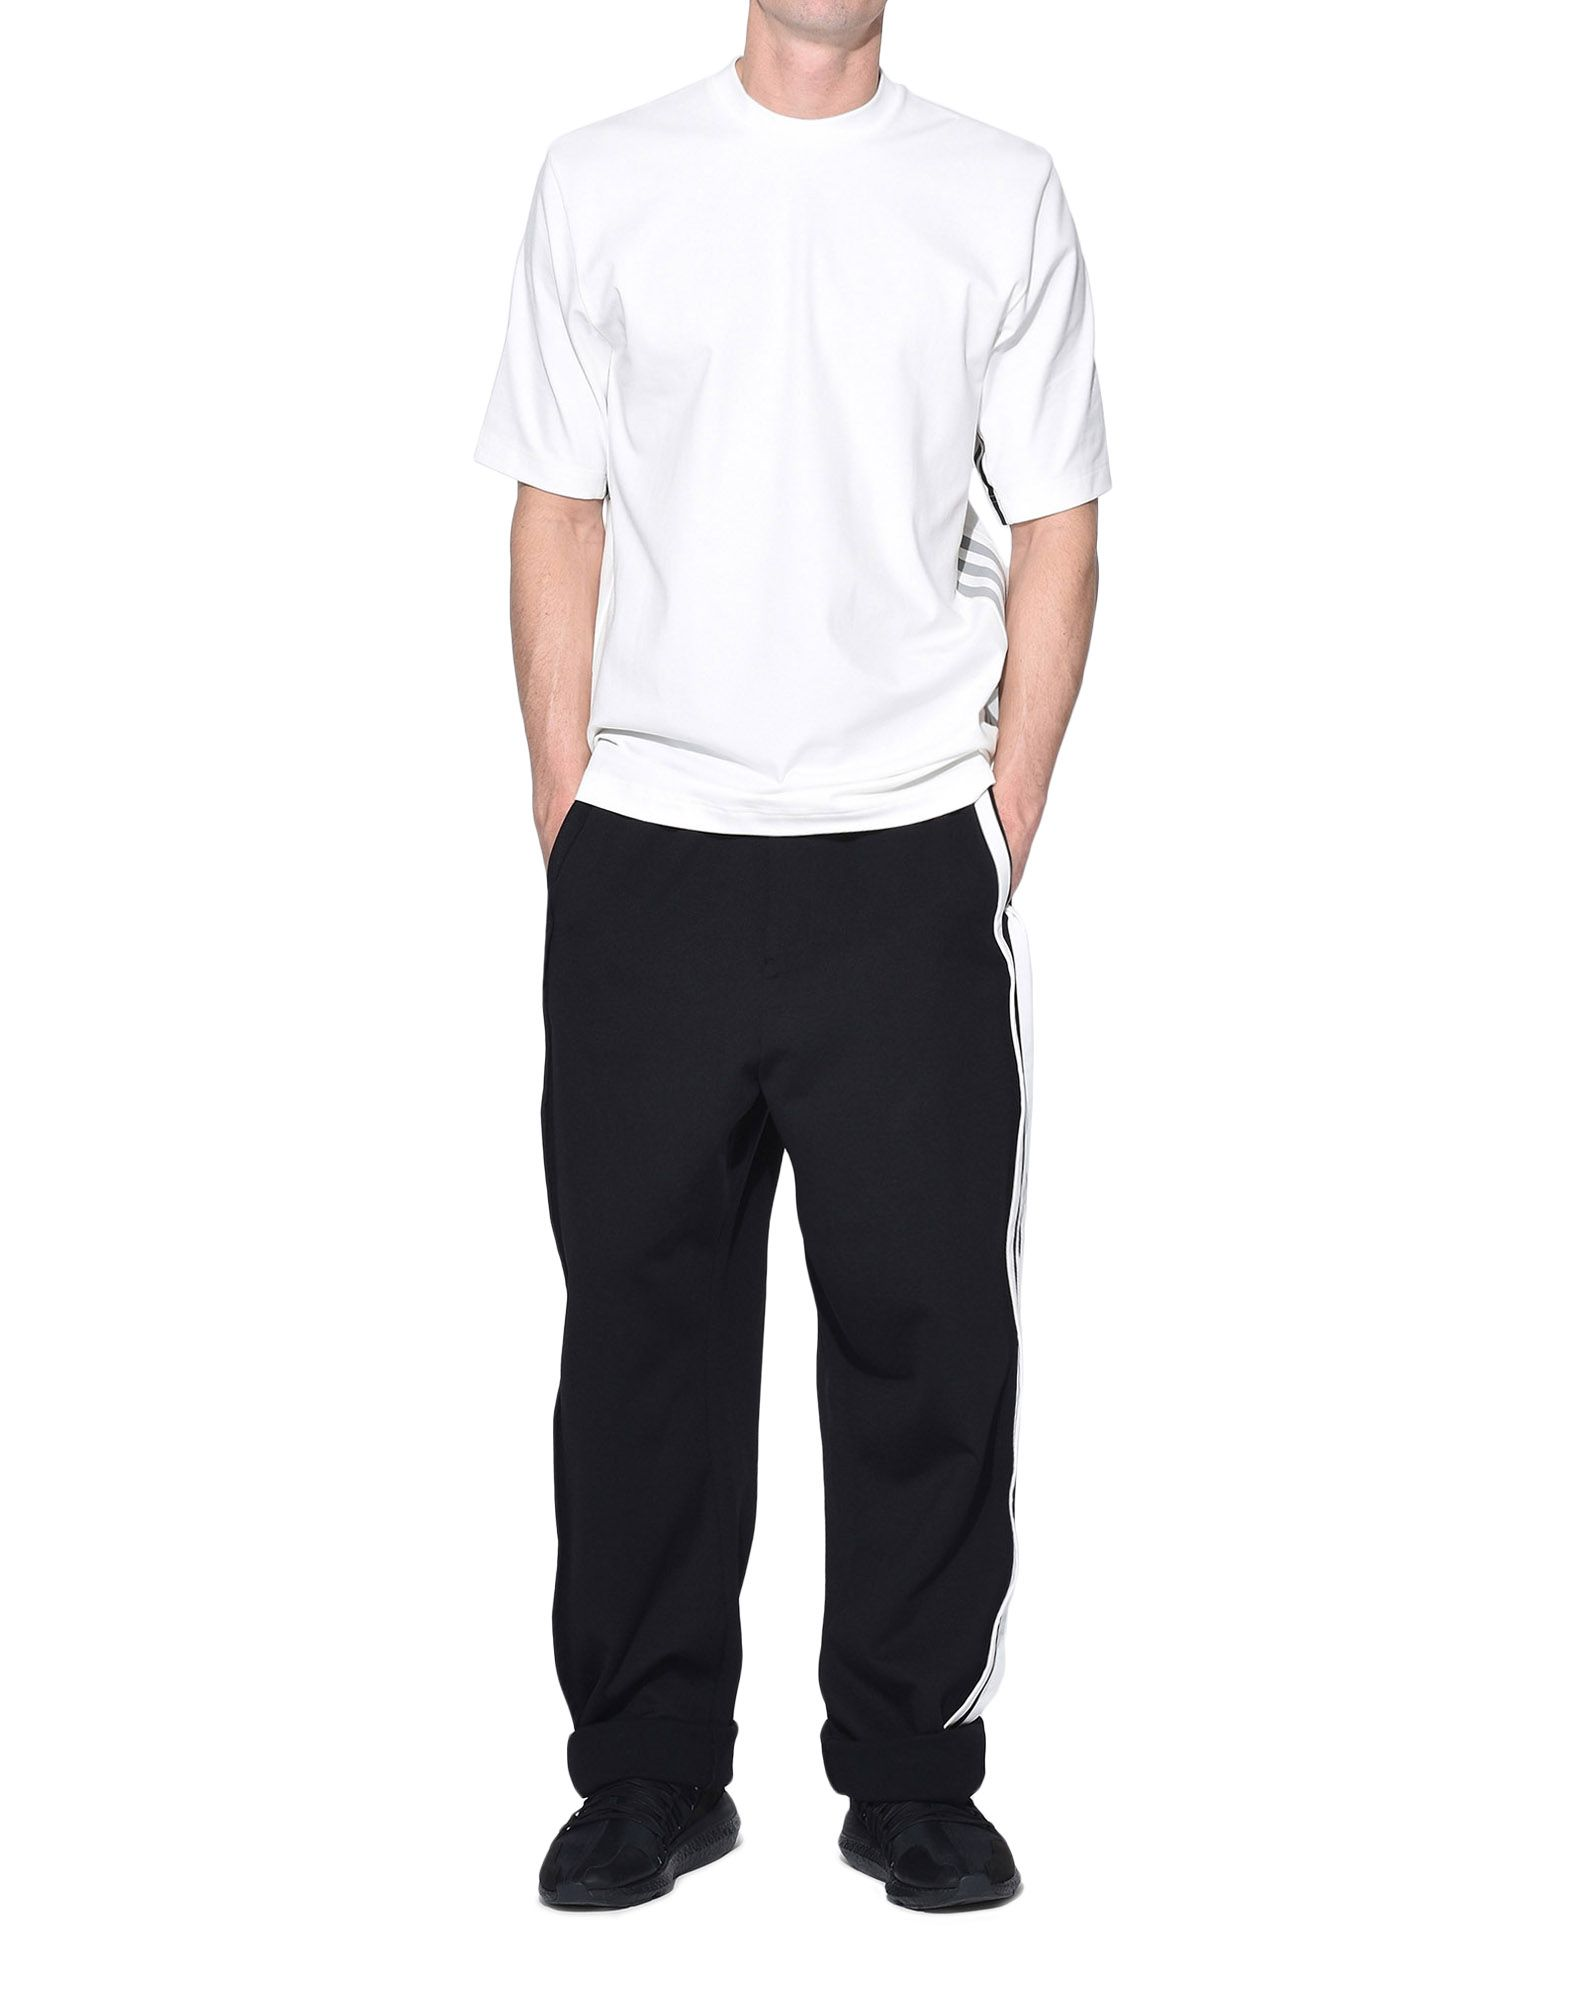 Y-3 Y-3 3-Stripes Tee Short sleeve t-shirt Man a